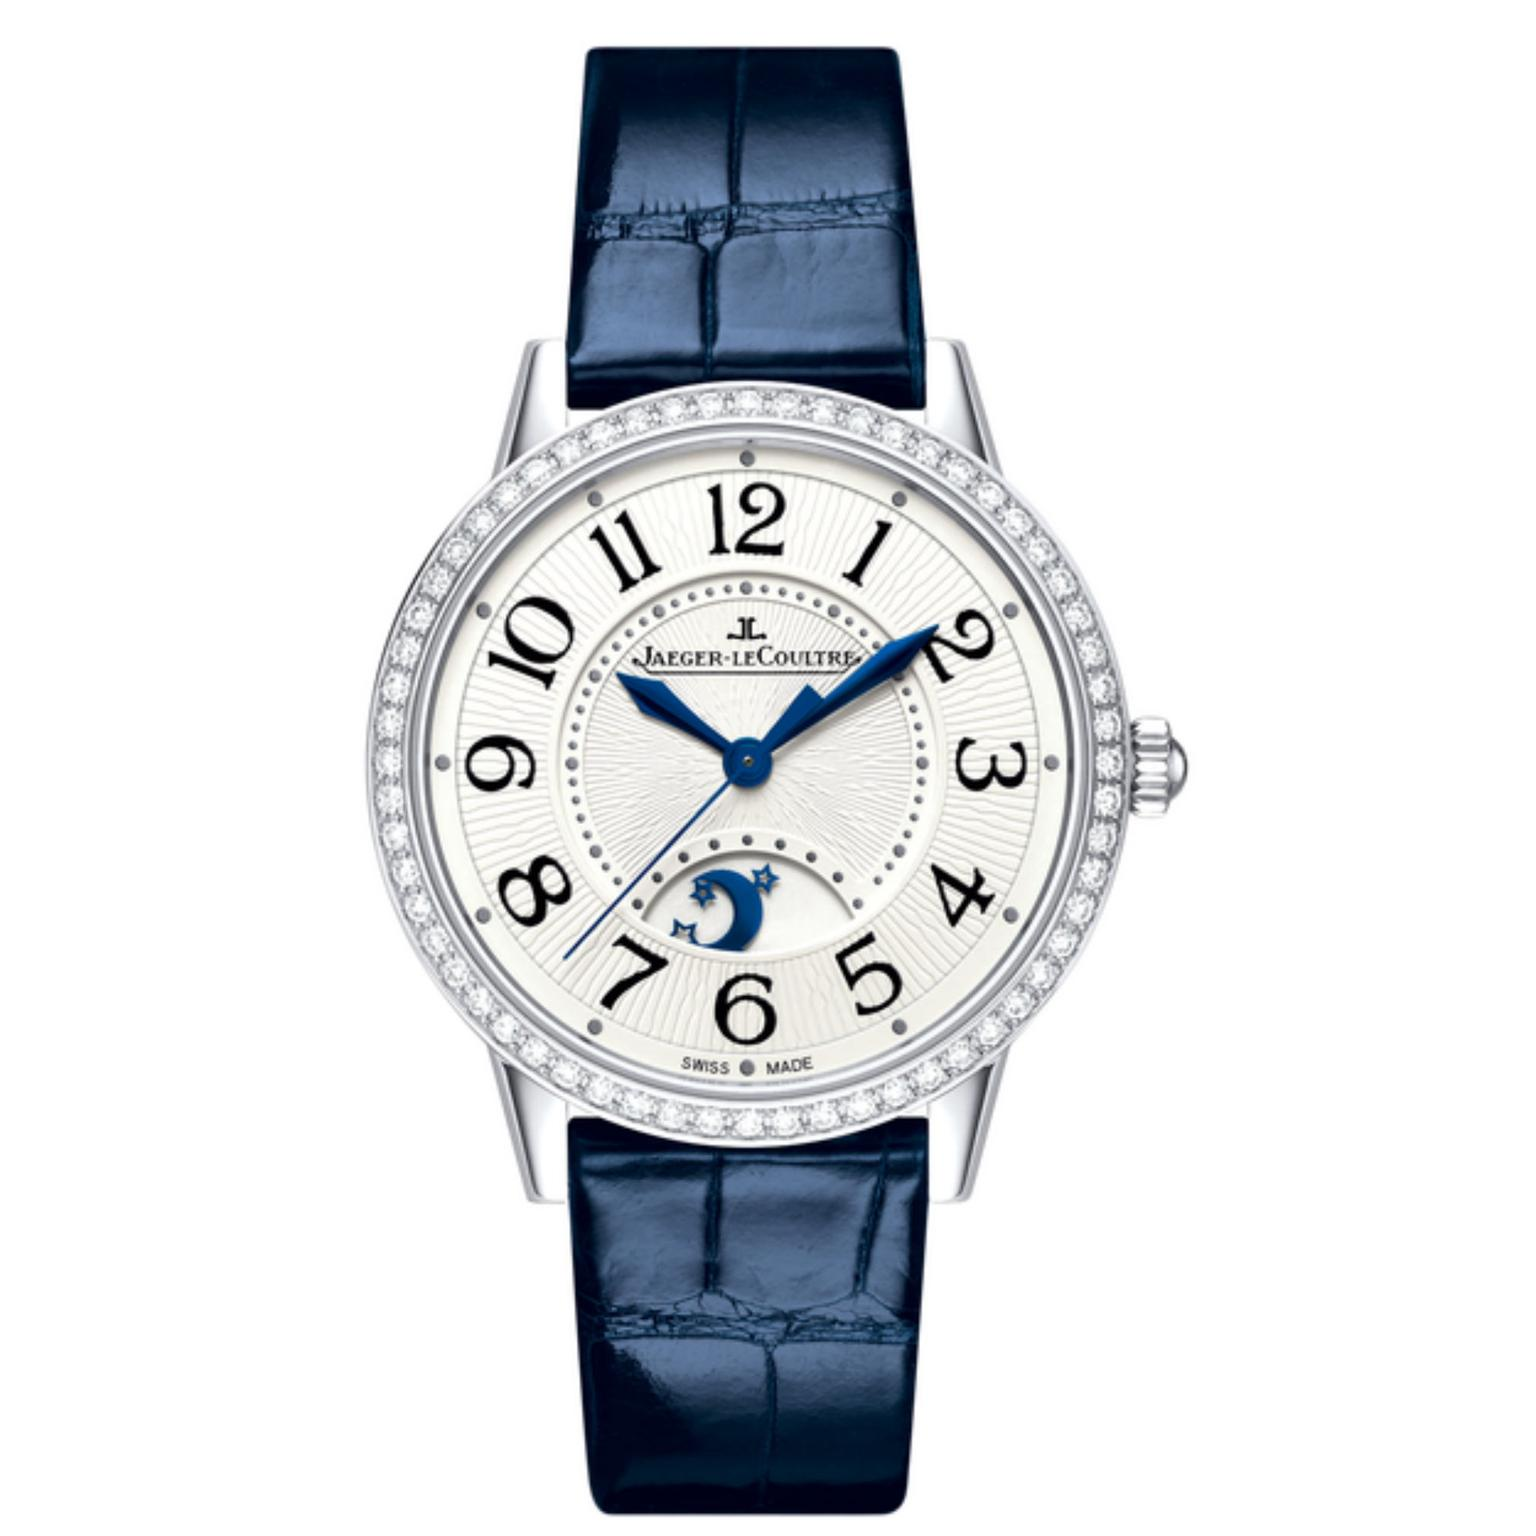 Jaeger-LeCoultre Rendez-Vous Night watch with diamonds